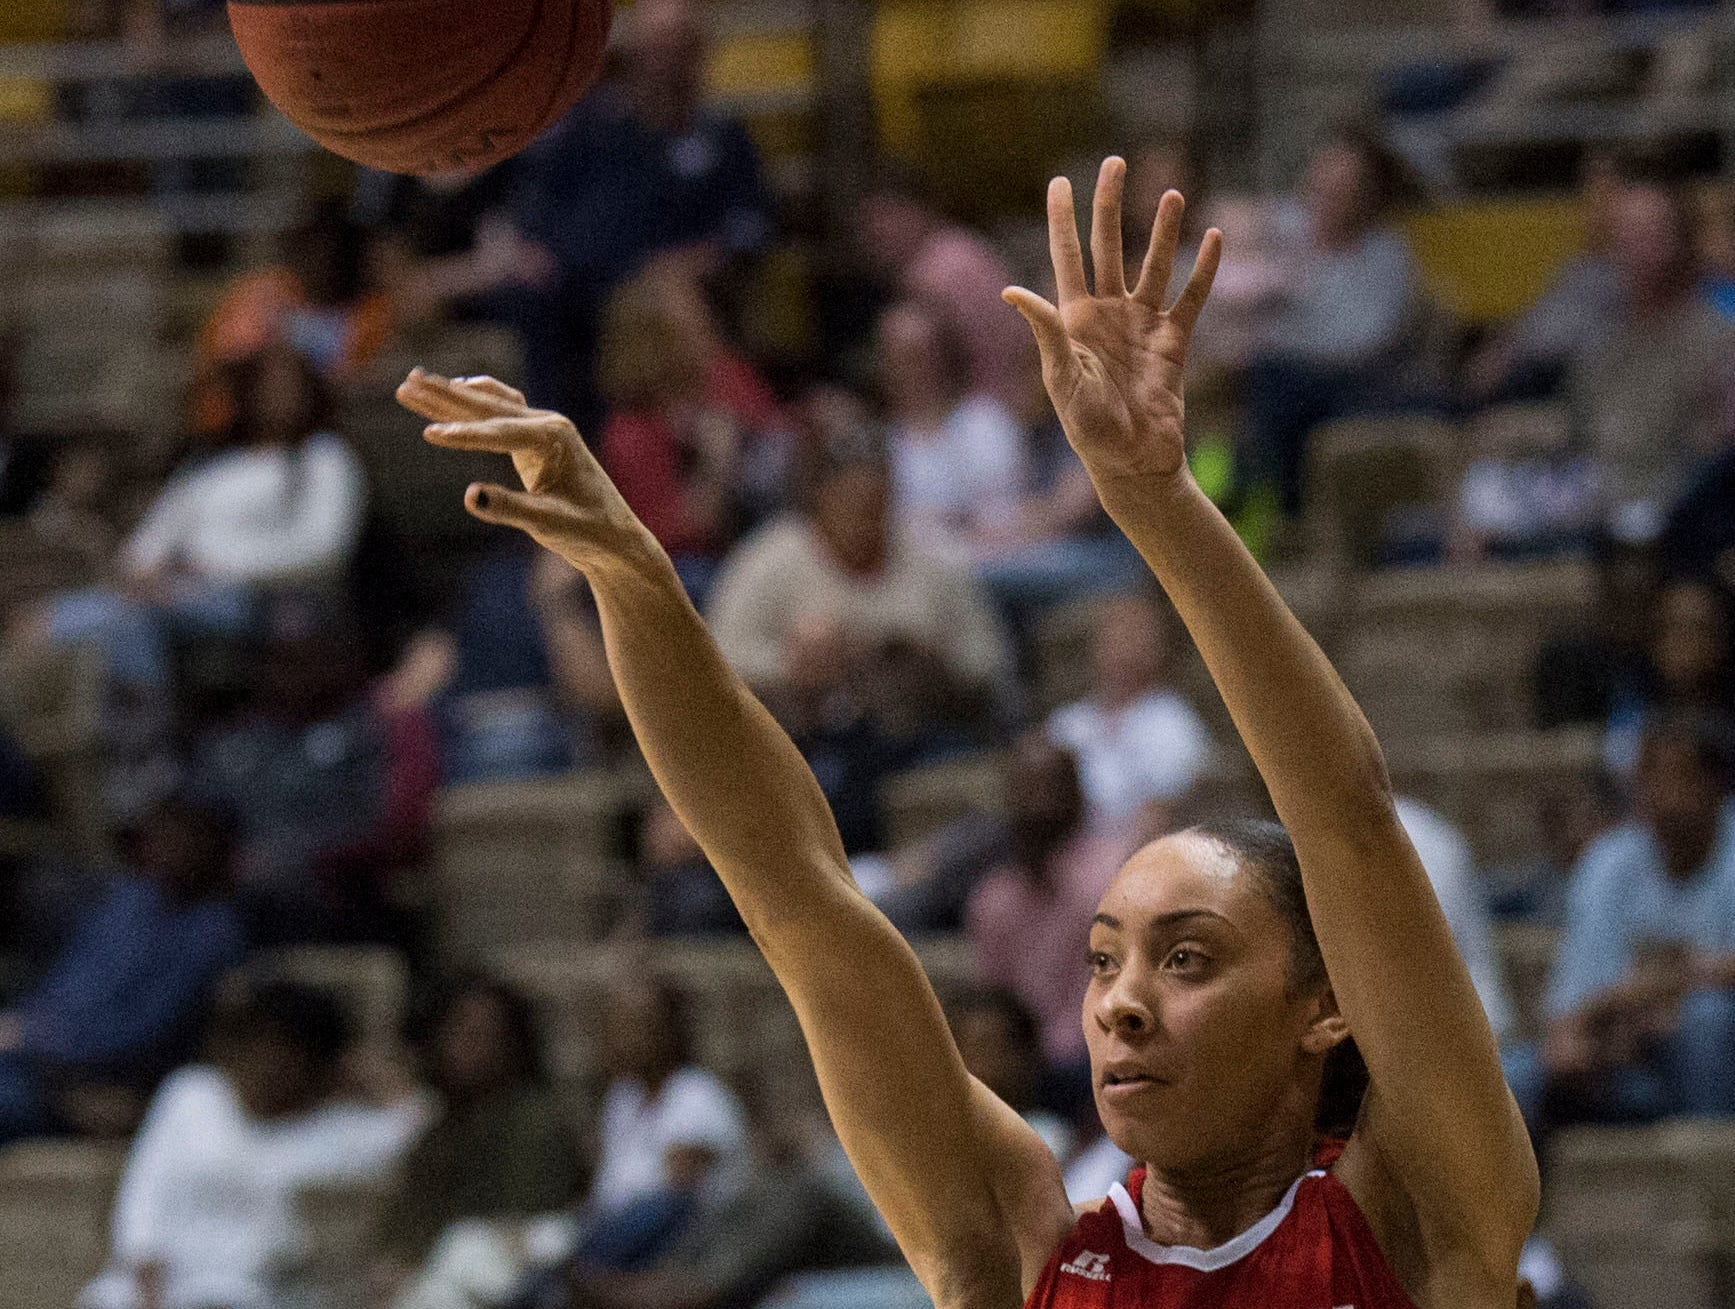 Alabama's Skyla Knight (1) takes a three pointer during the Alabama-Mississippi All-Star game at the Dunn-Oliver Acadome in Montgomery, Ala., on Friday, March 15, 2019. Alabama All-stars defeated the Mississippi All-stars 101-82.